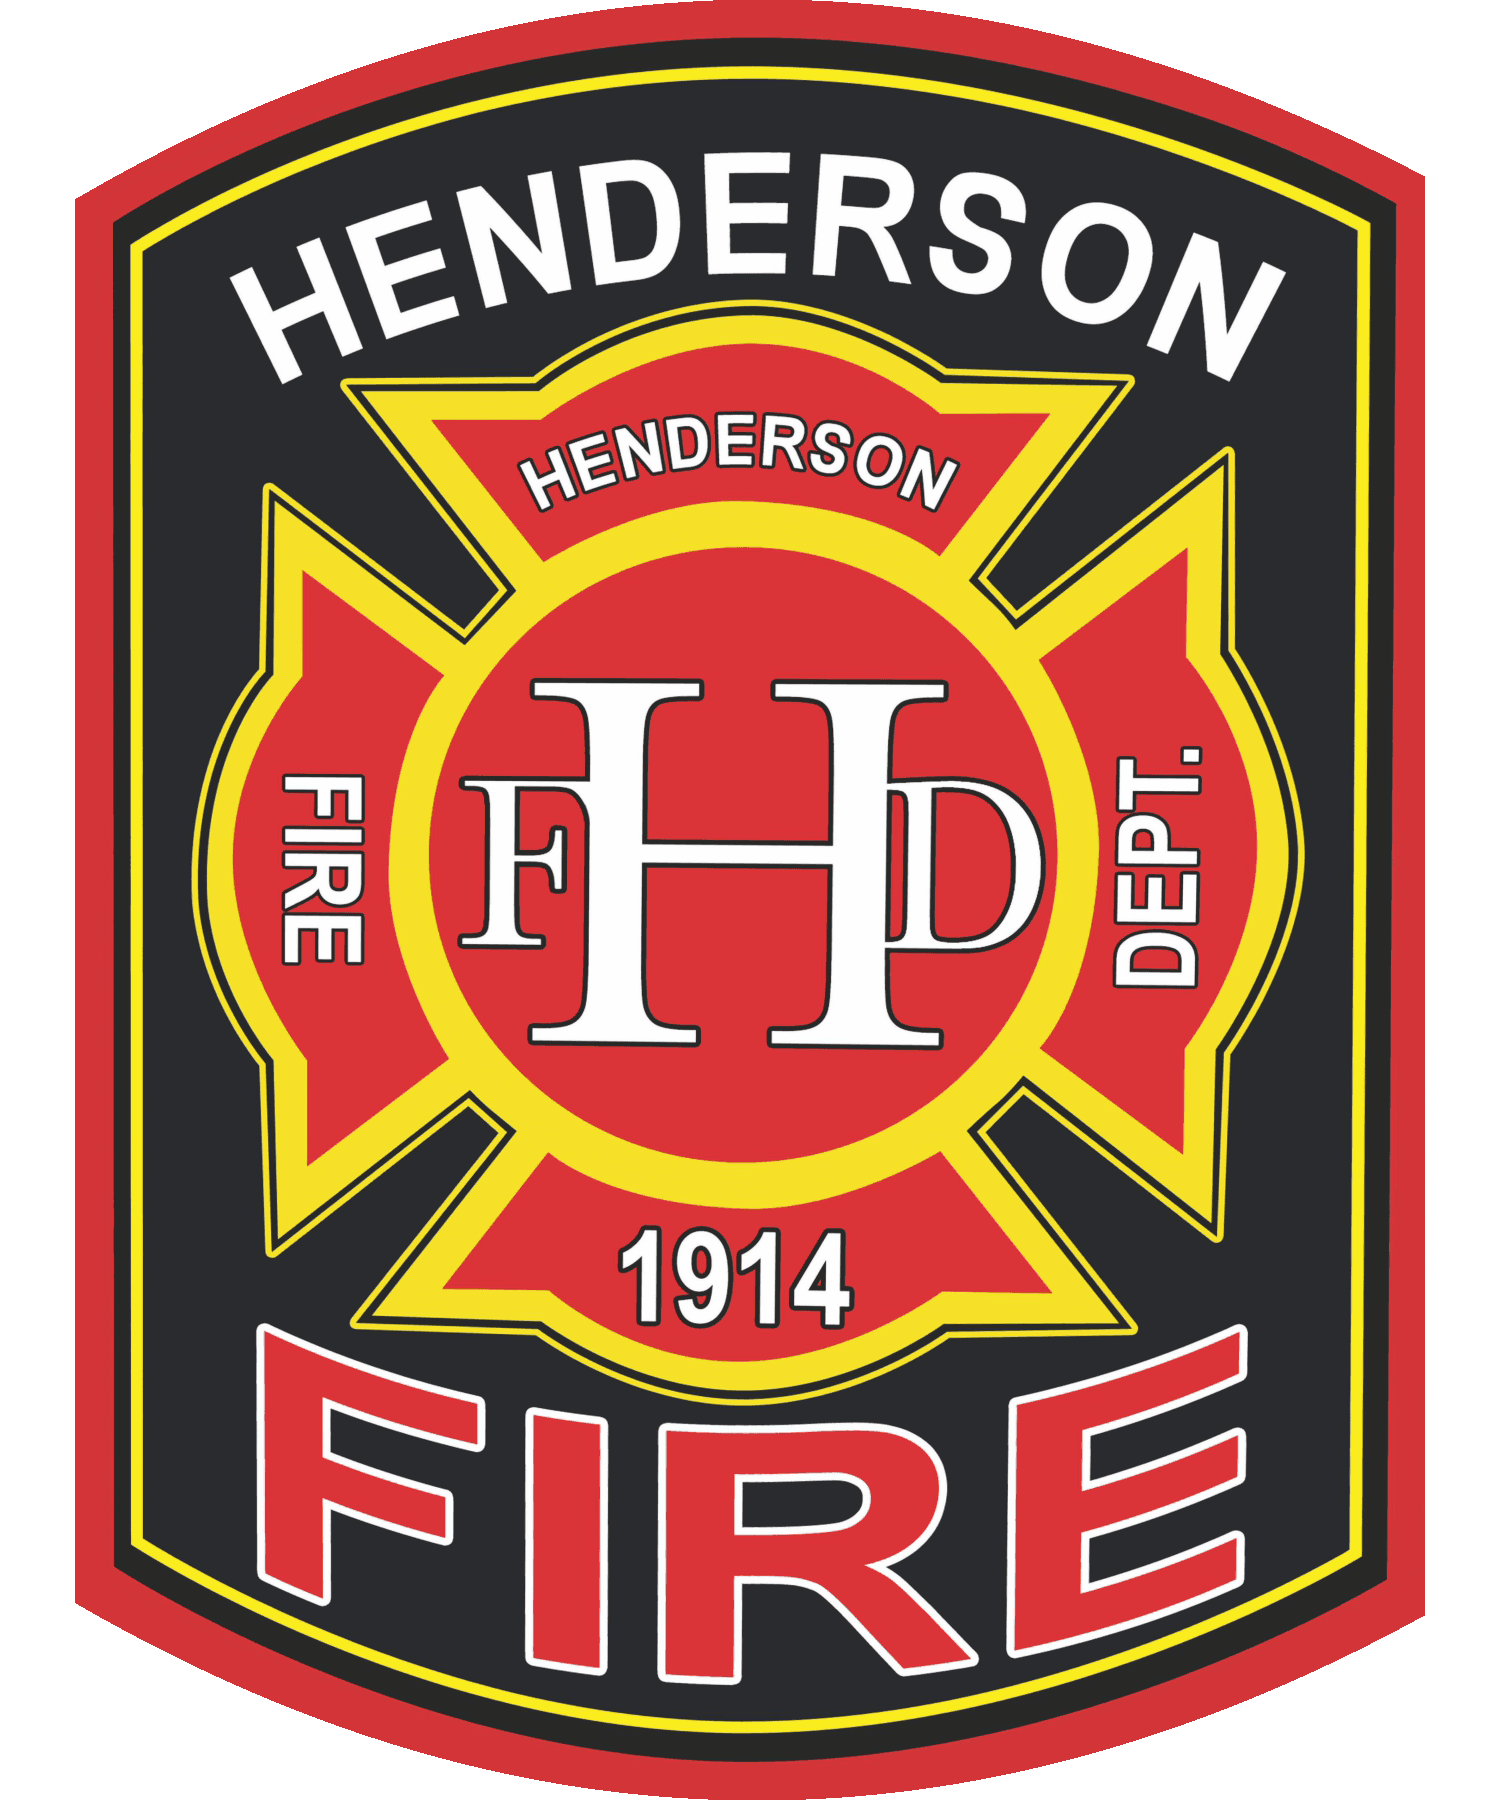 Logo of Henderson Fire Department in Black, Red, Yellow and White colors